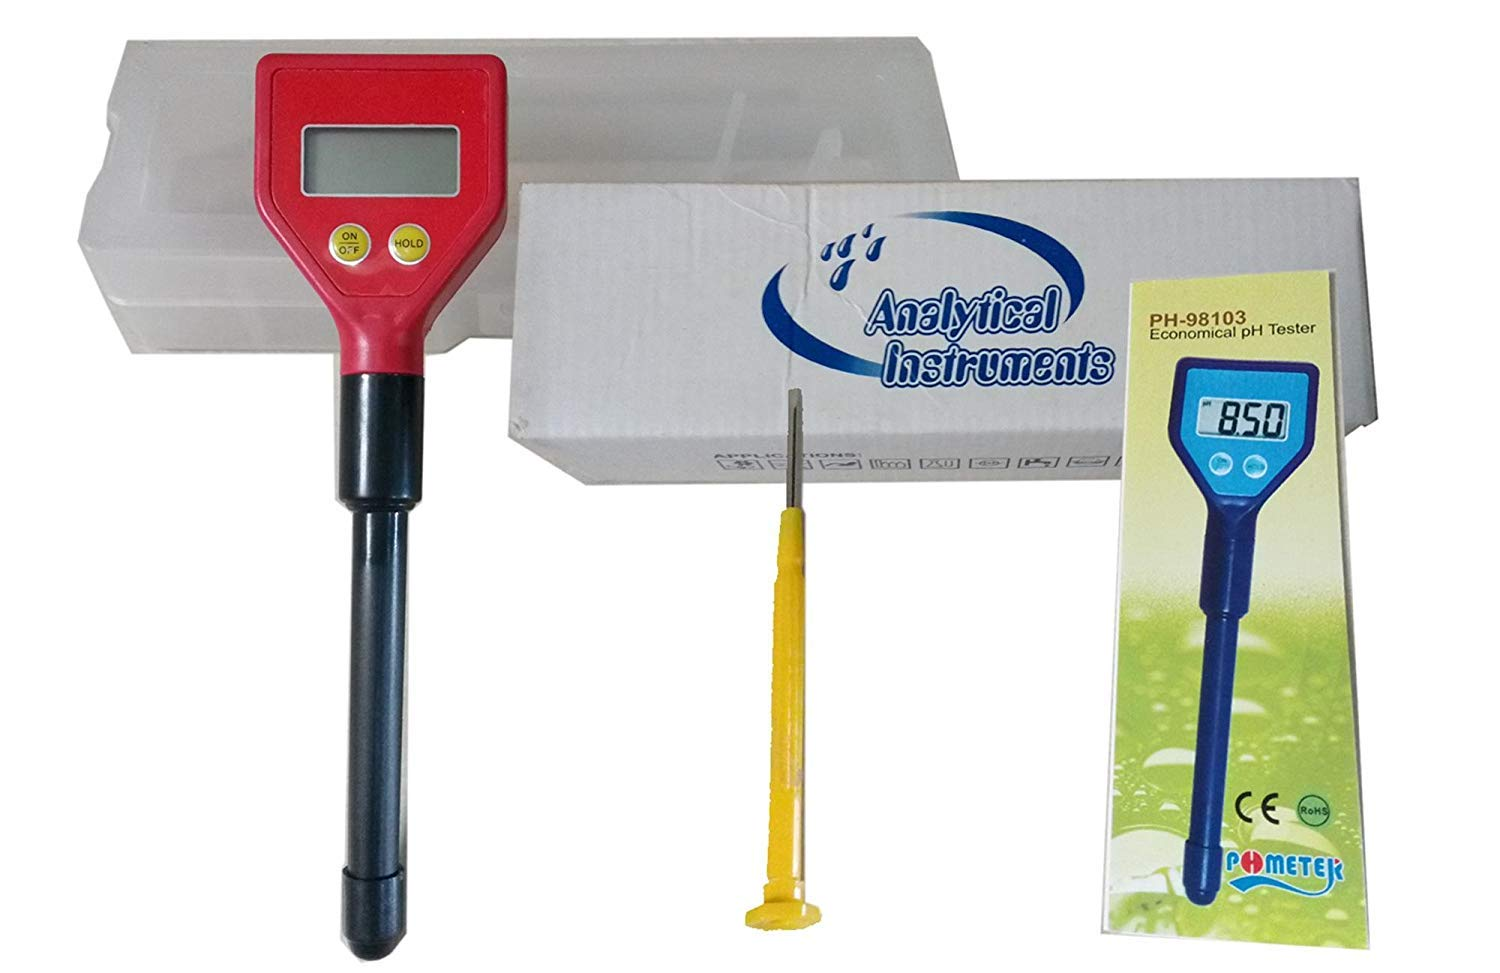 VTSYIQI PH-98103 Portable Pen Type Milk Water PH Meter PH Electrode with pH Electrode Acidimeter Industry and Experiment Analyzer Rechargeable pH-Meter Color Red